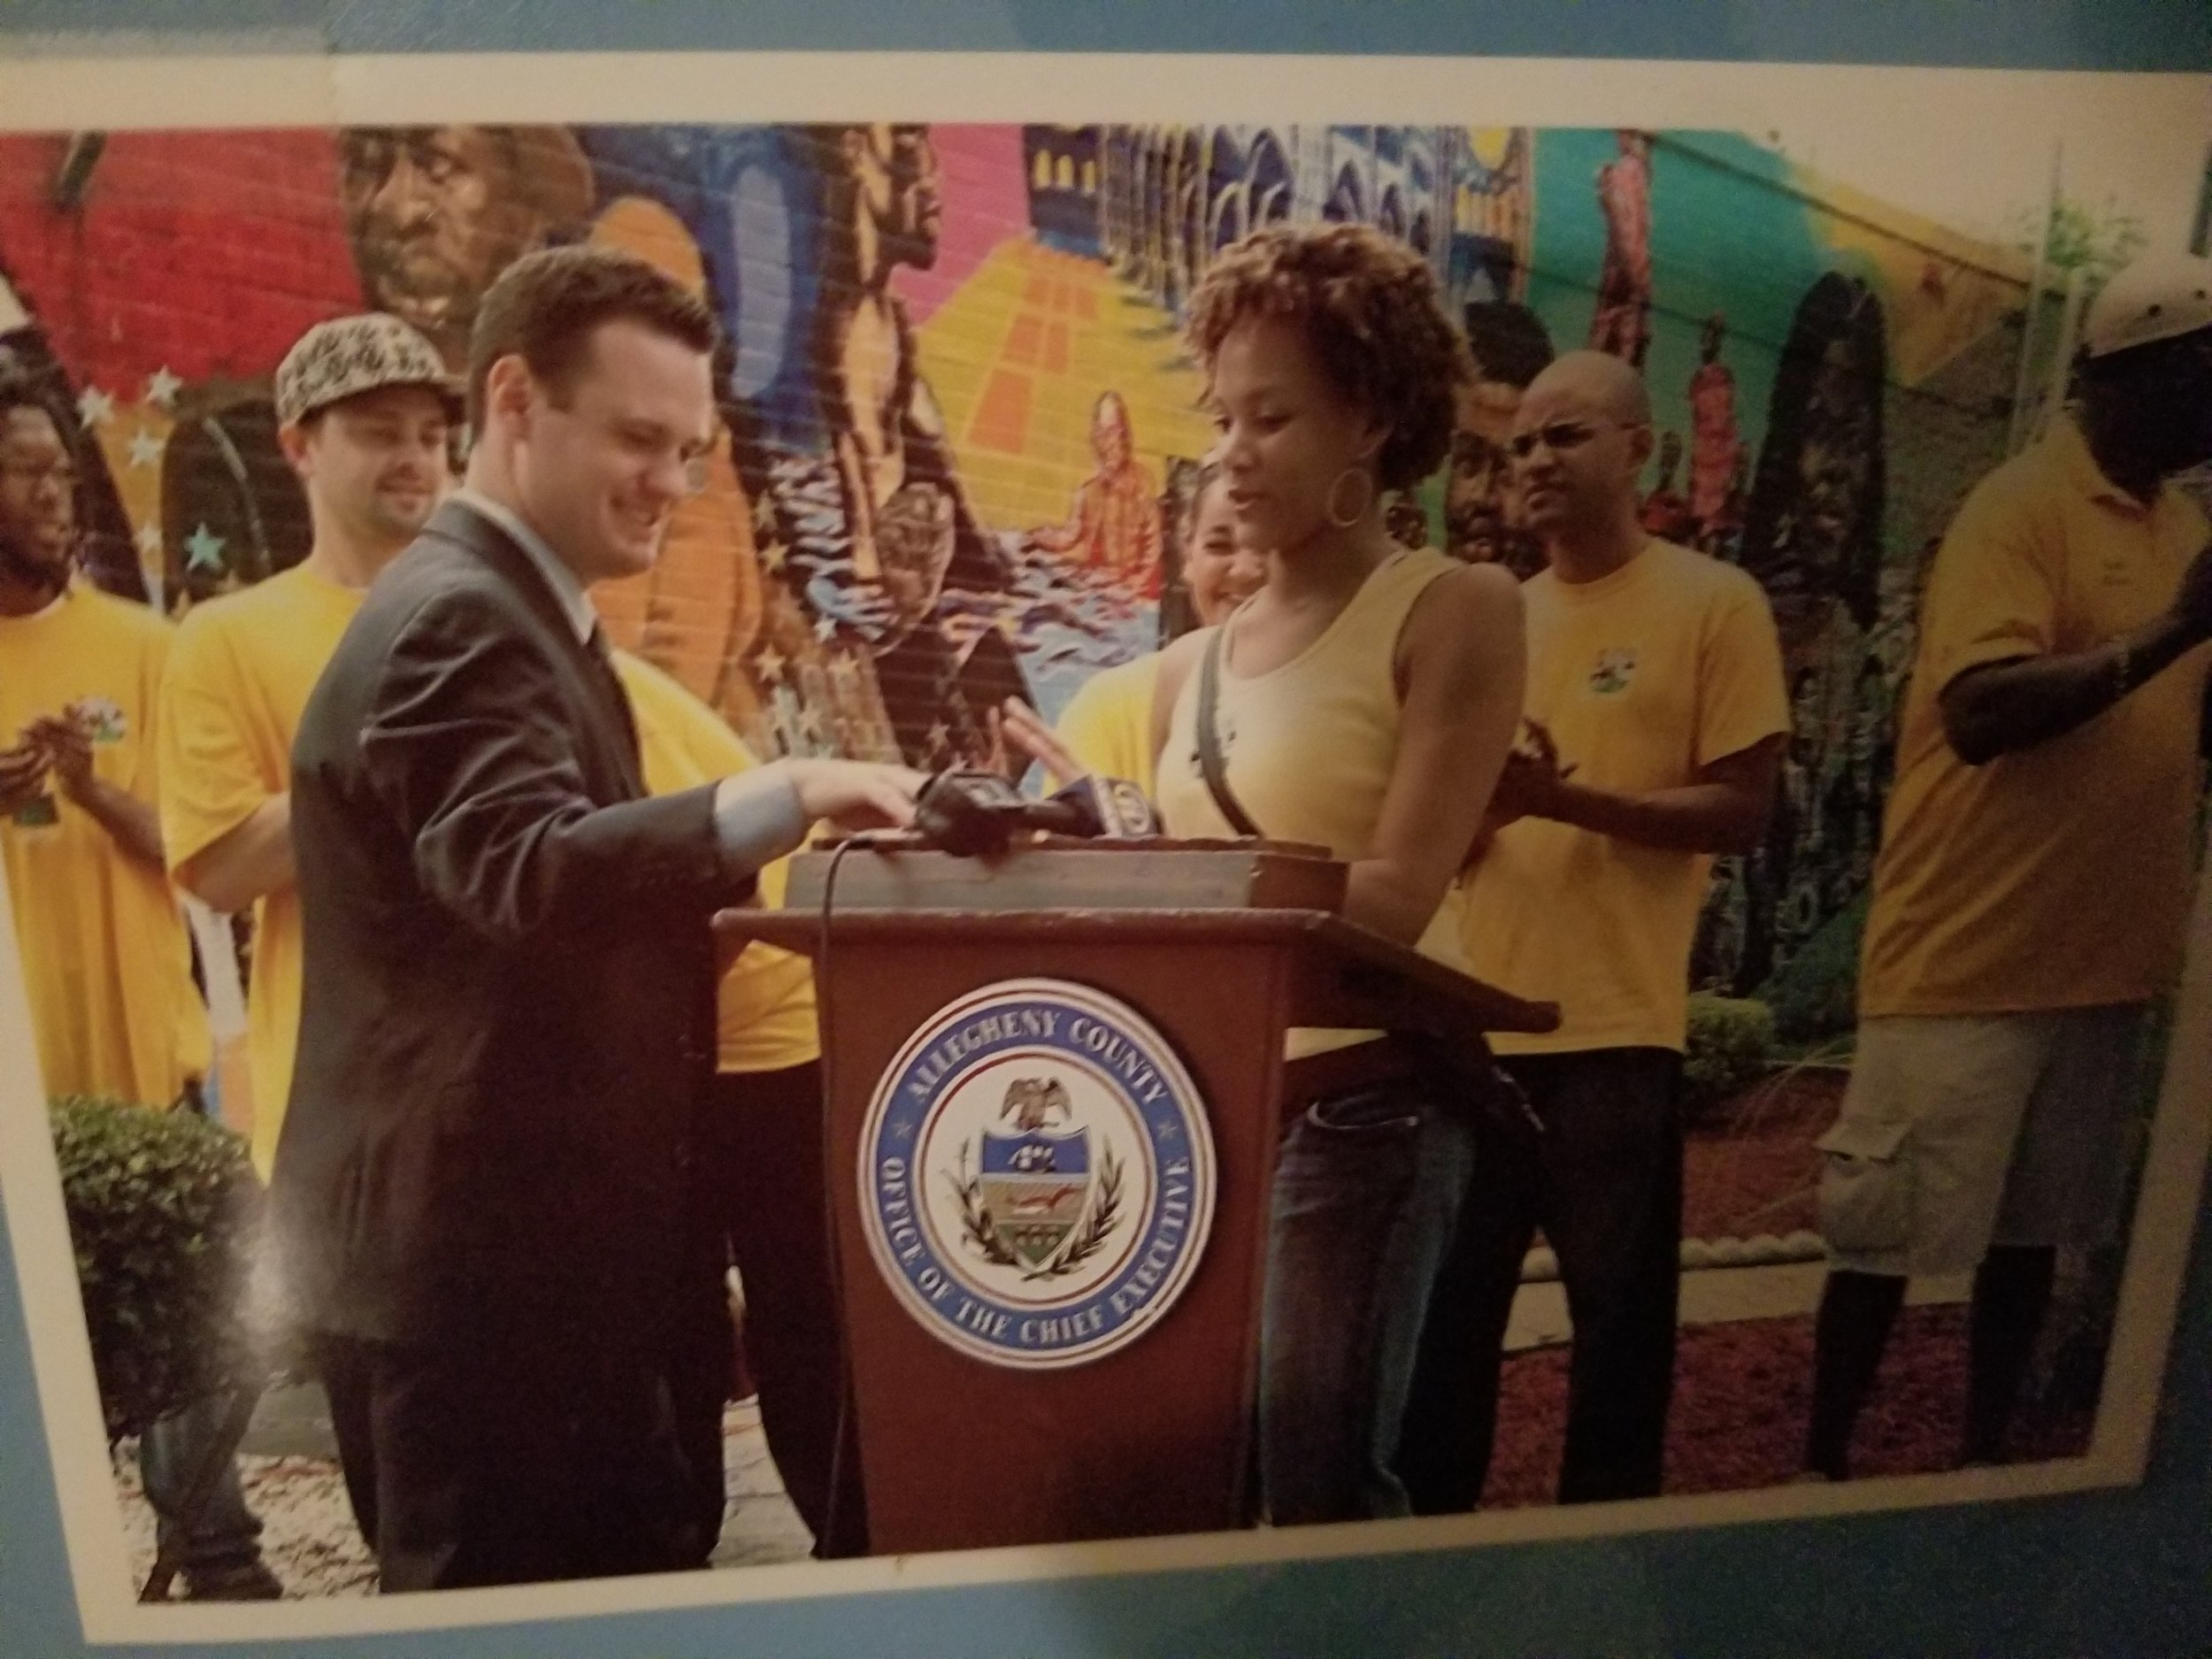 Major Ravenstahl delivering an award to Proclamation MLK Mural day (8/7/2006) in Pittsburgh, PA to marketing MLK Mural Director Anji Corley